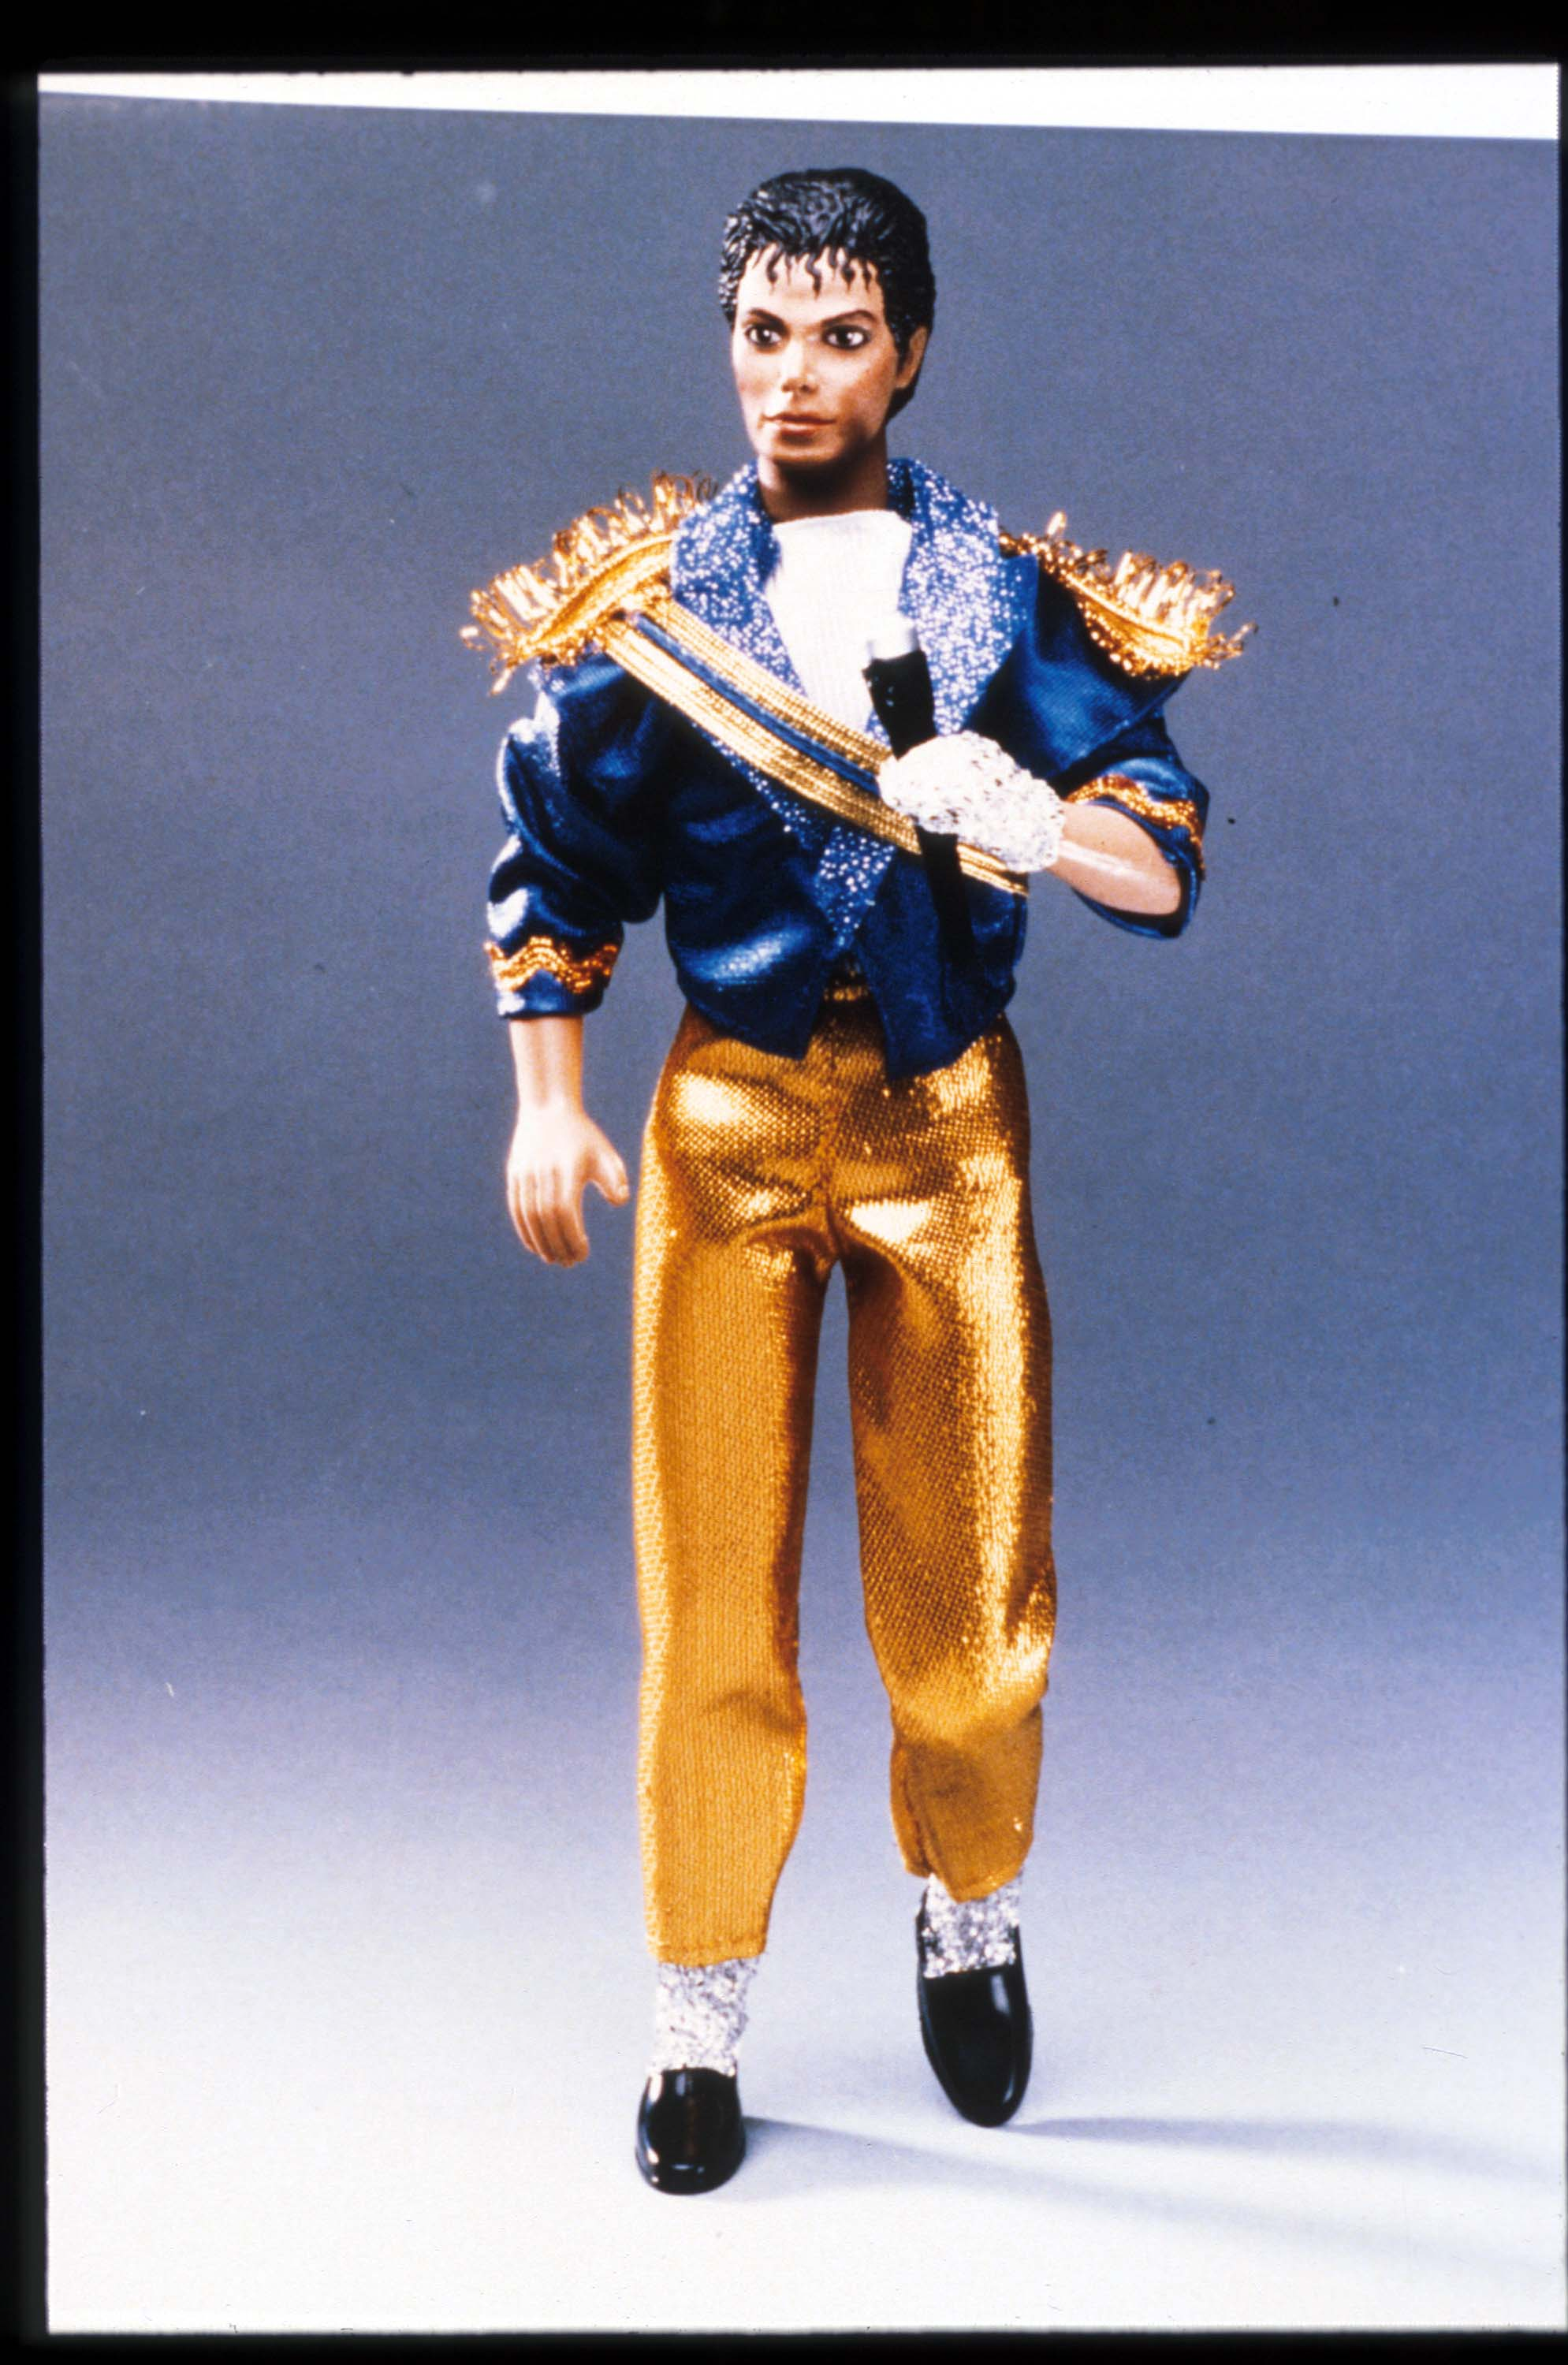 A doll of the entertainer Michael Jackson